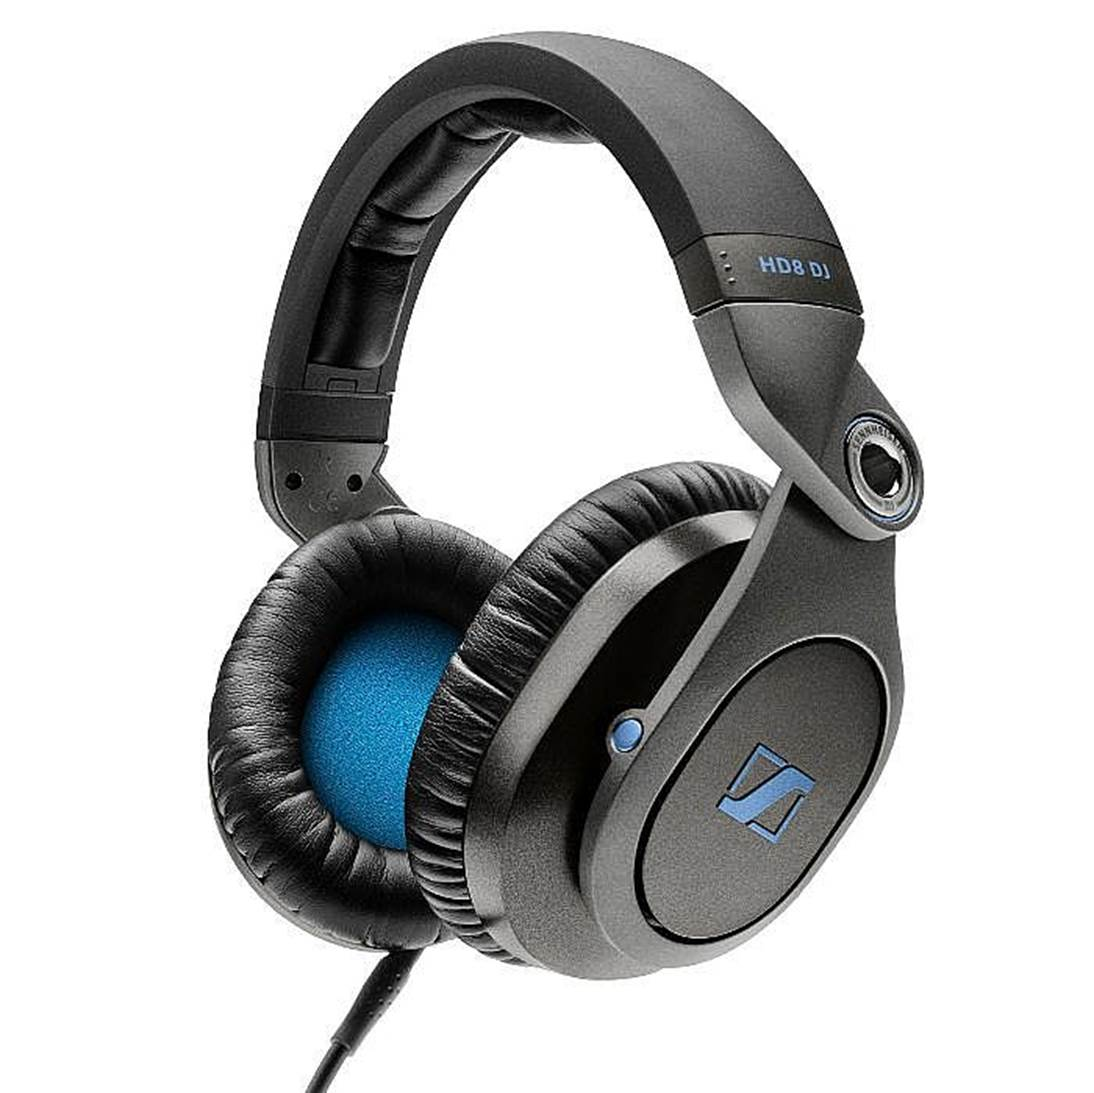 Sennheiser HD 8 DJ Headphone